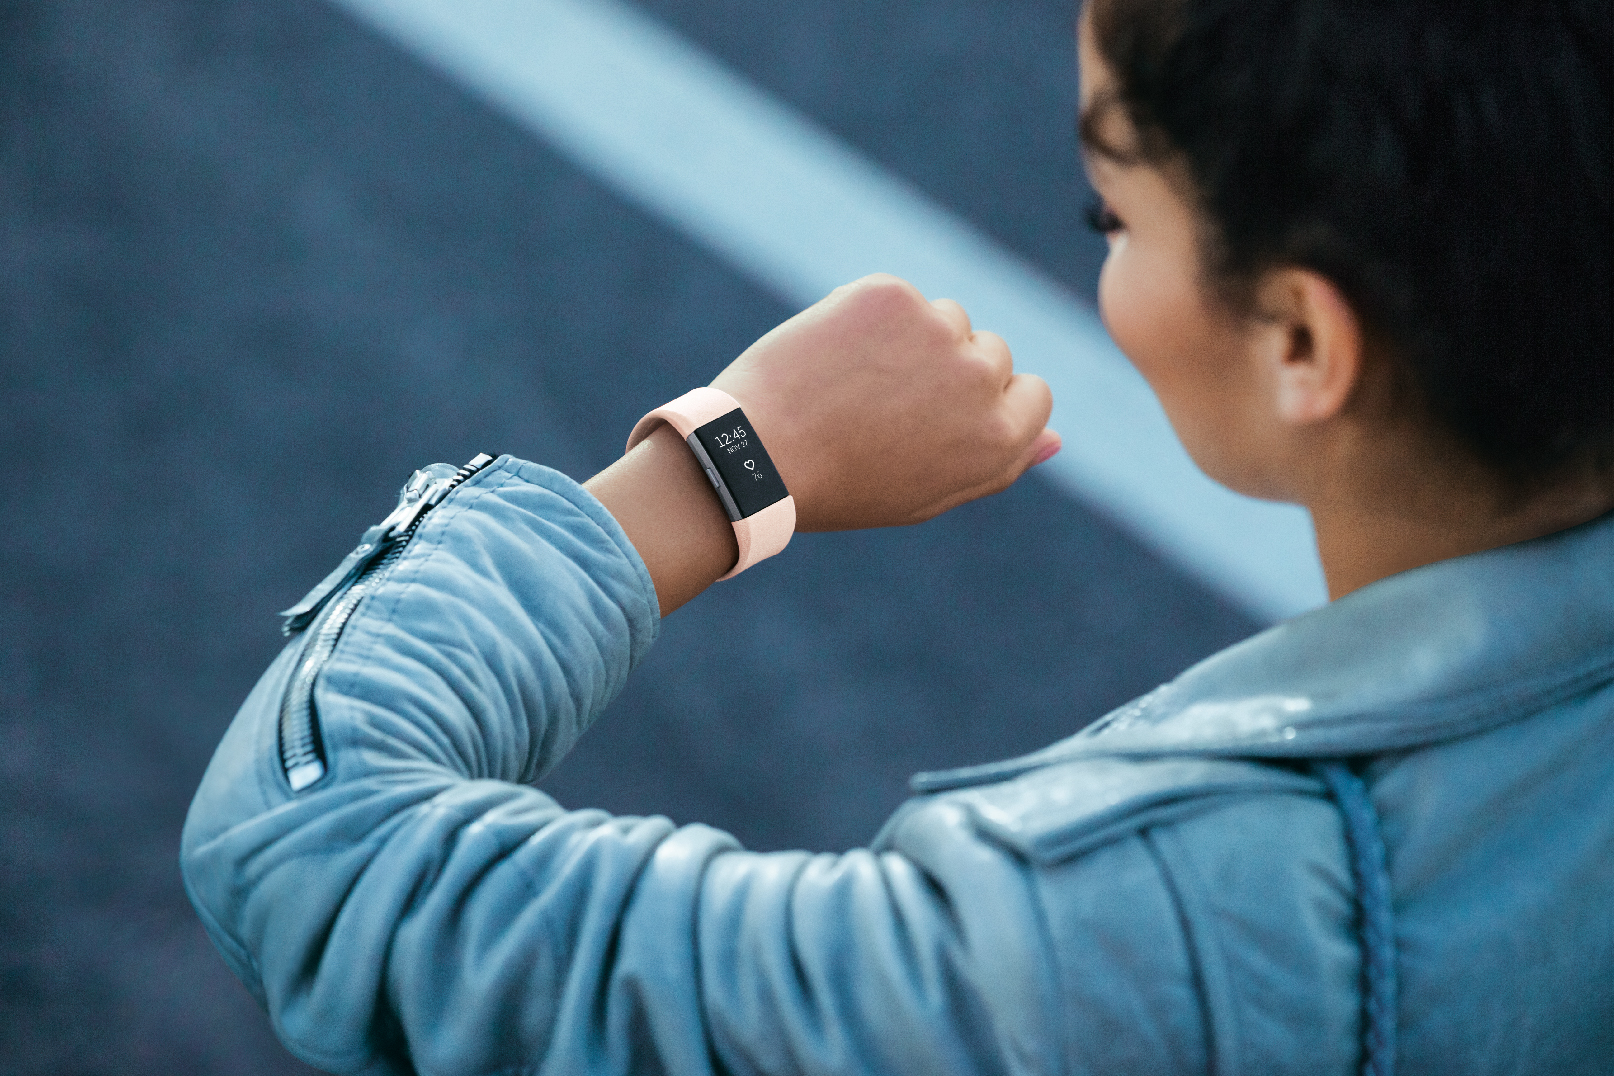 How to join FitBit's coronavirus COVID-19 early detection study